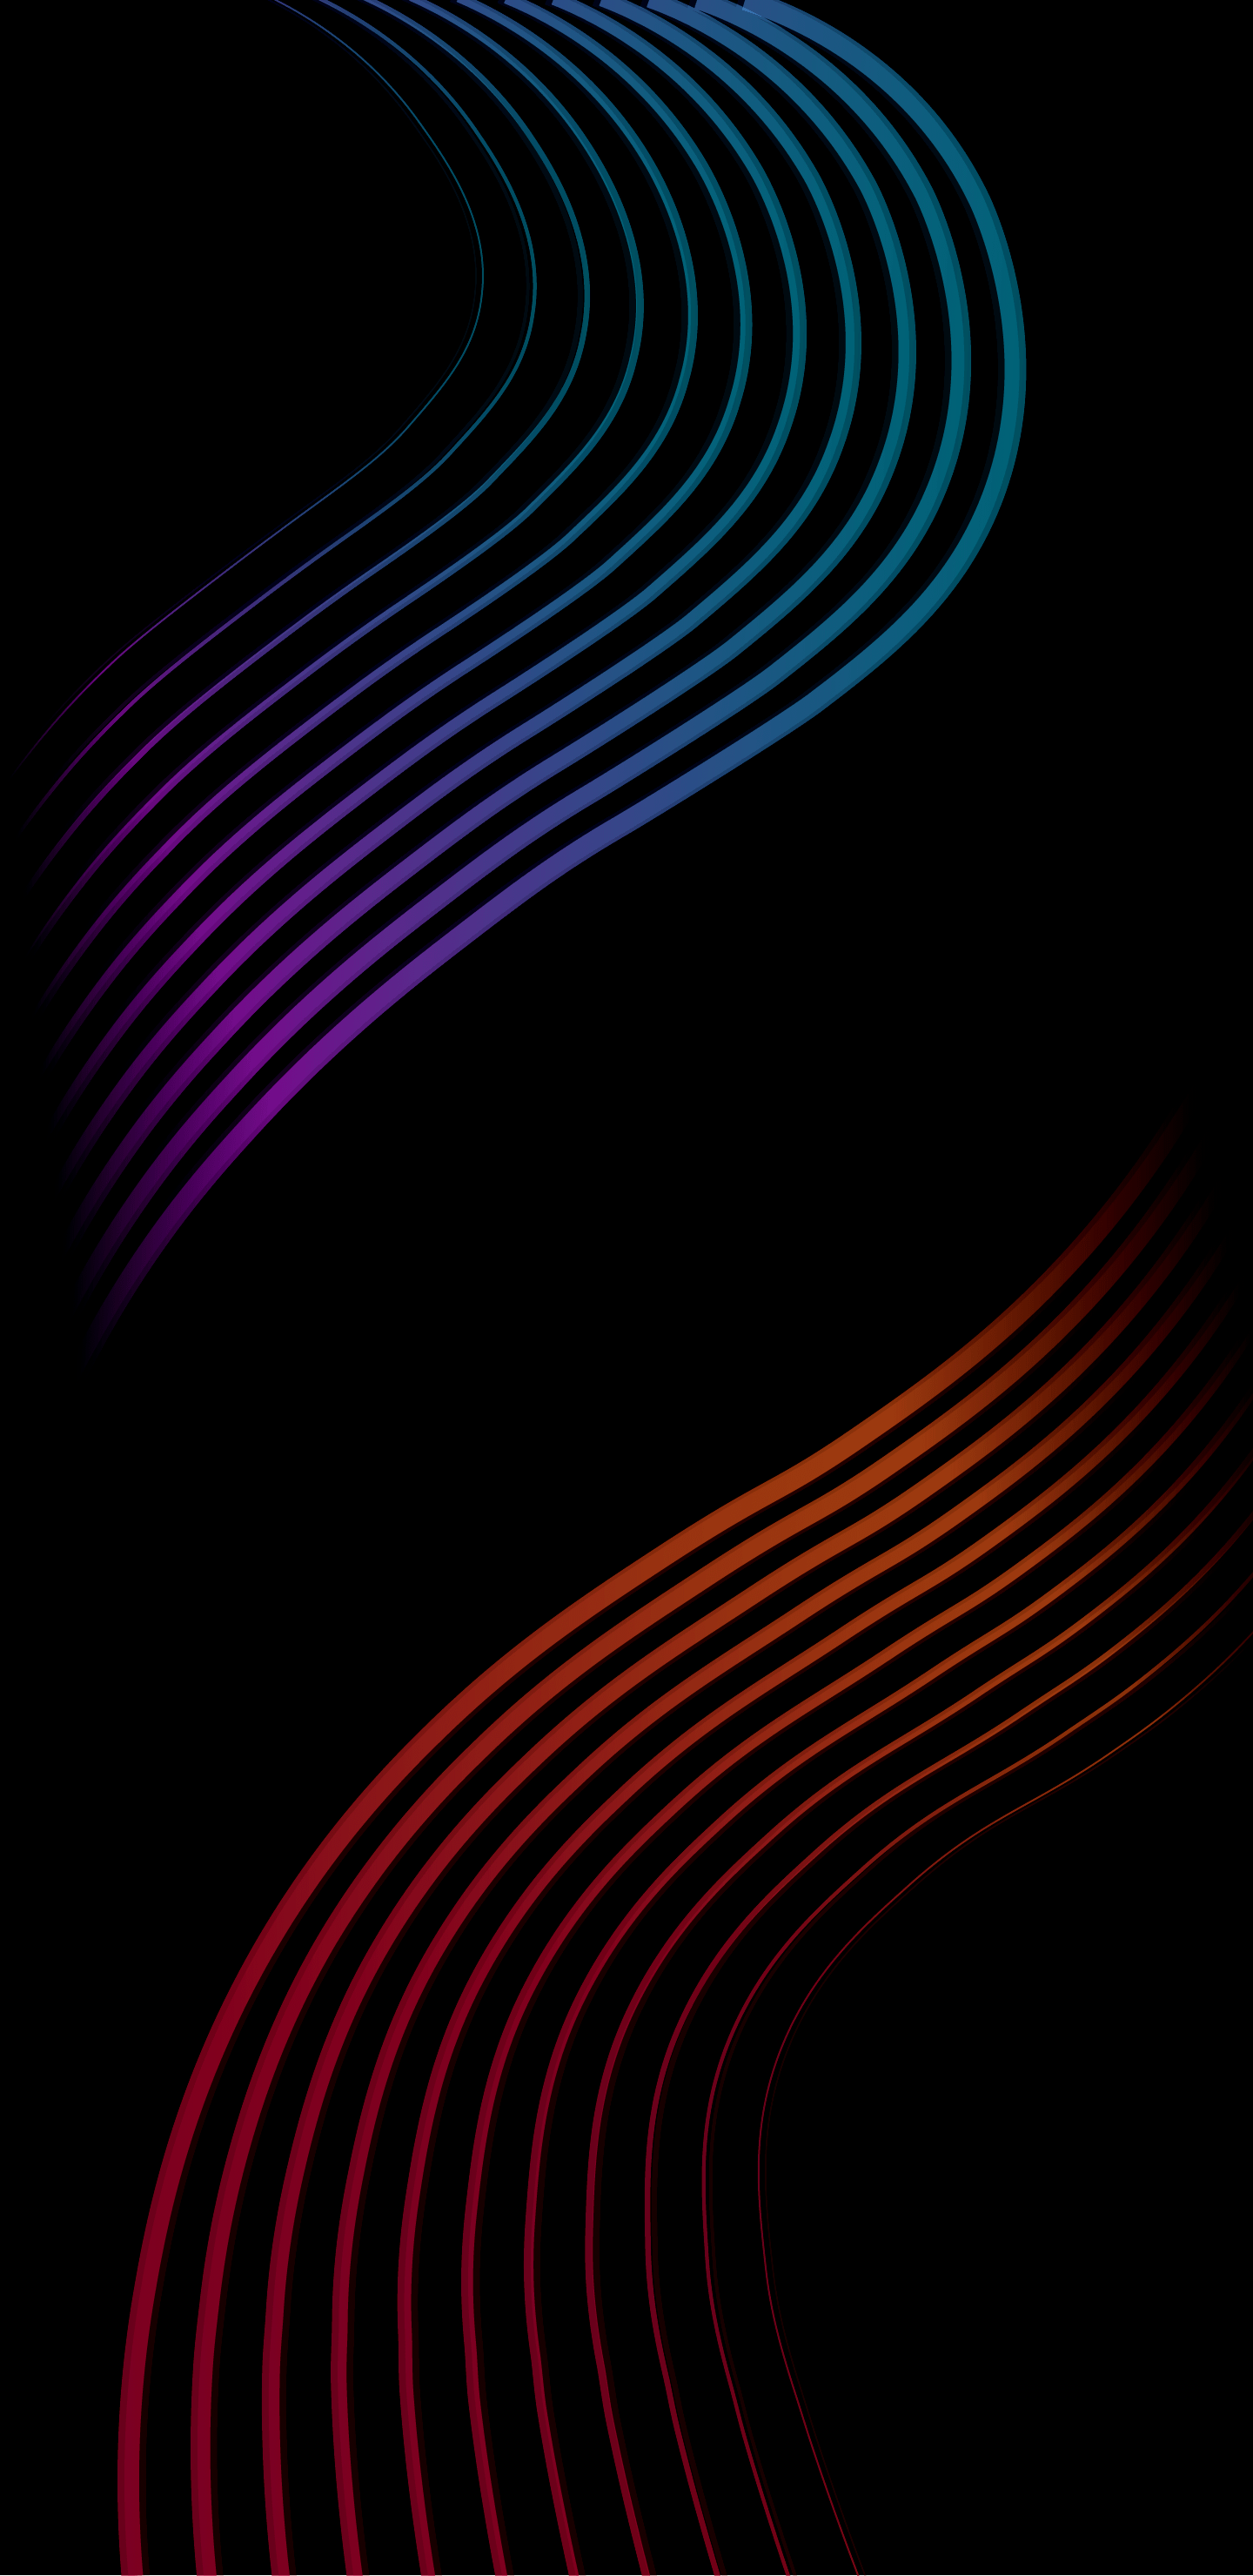 Colored Waves 1440x2960 I Imgur Com Submitted By Ydder To R Amoledbackgrou Abstract Iphone Wallpaper Phone Wallpaper Design Abstract Wallpaper Backgrounds